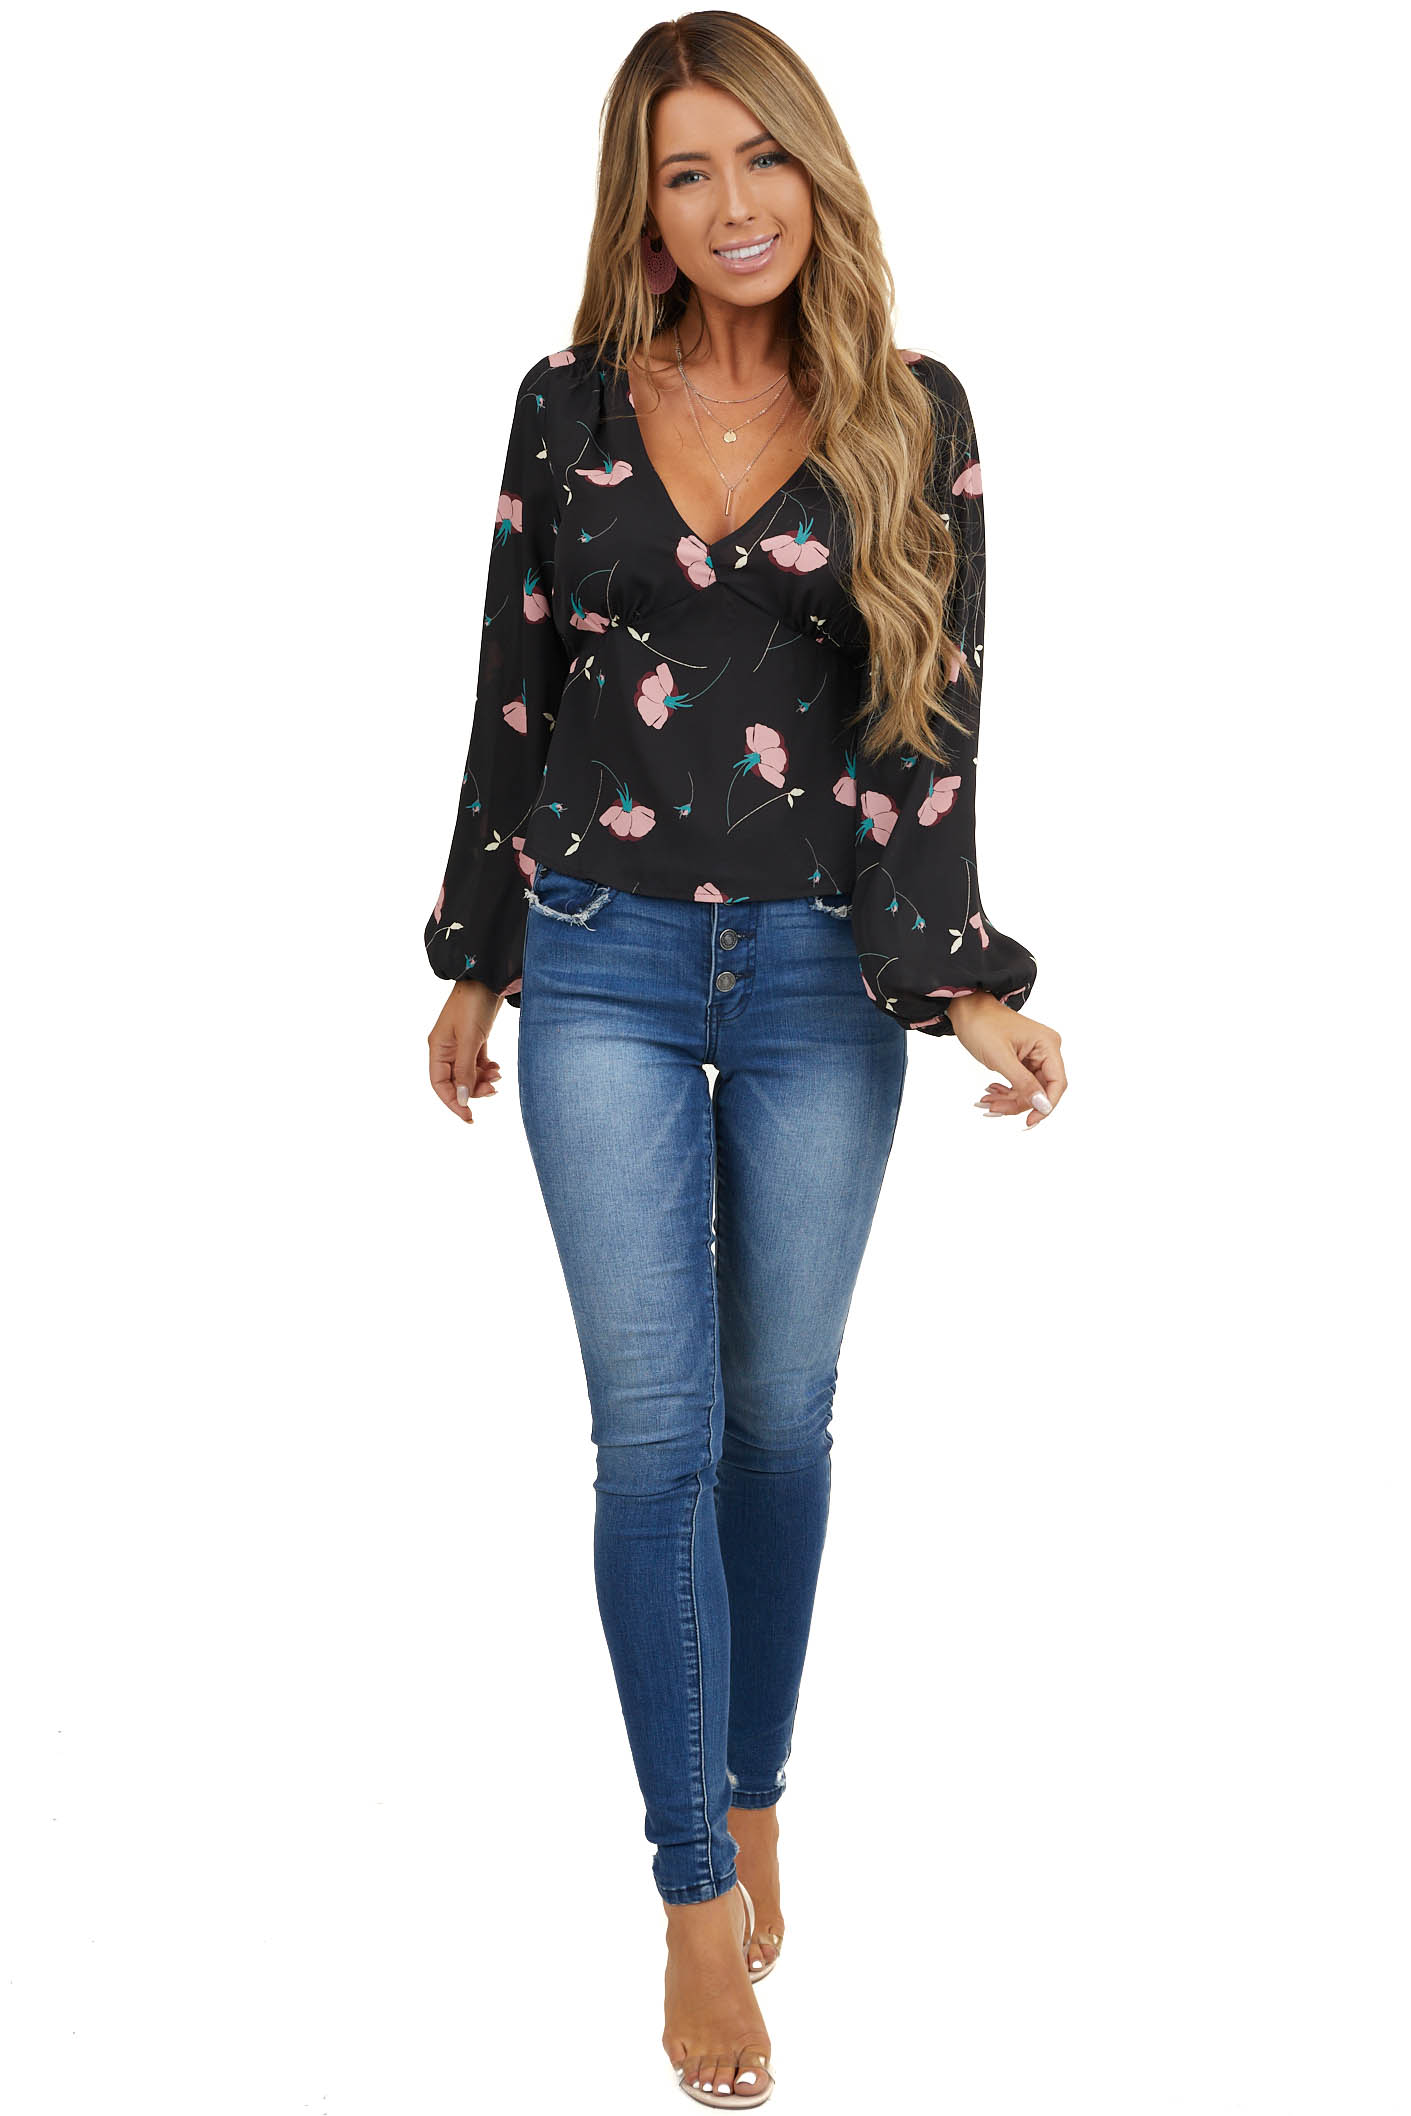 Black Floral Print Blouse with Long Cuffed Bubble Sleeves